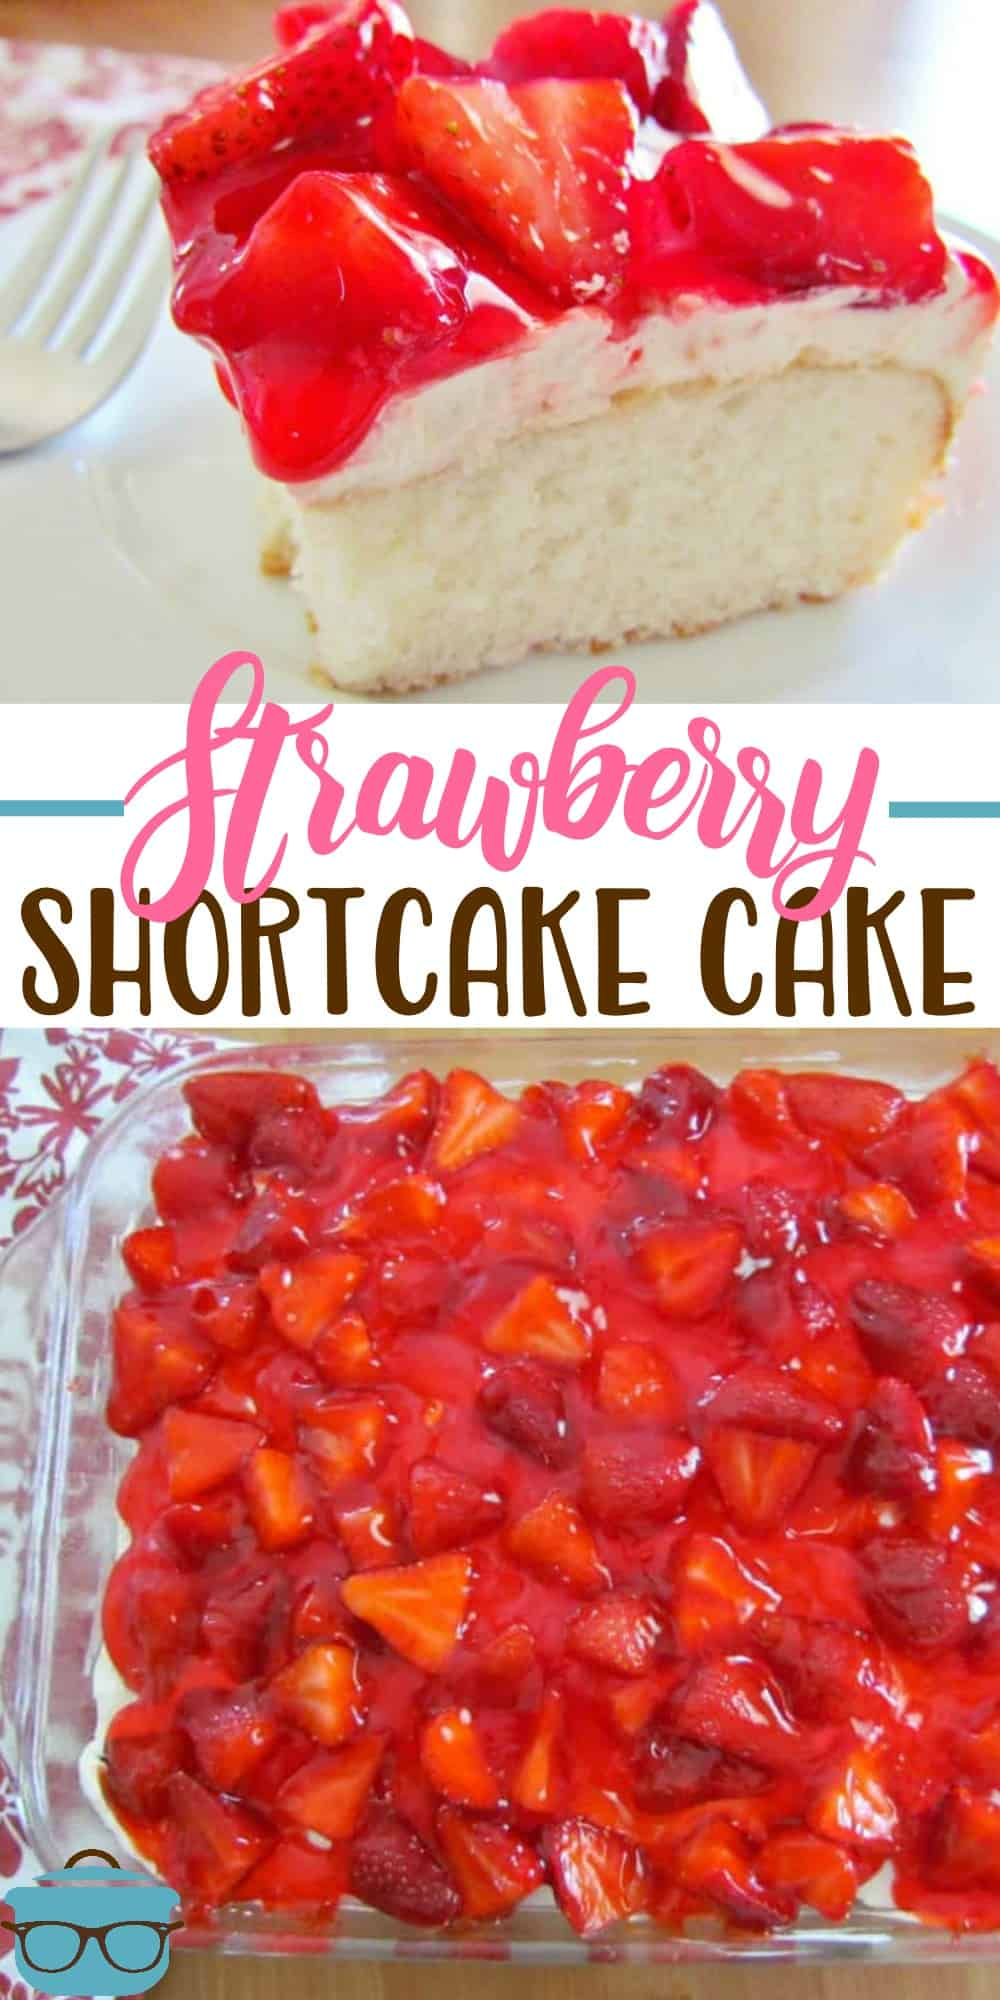 Strawberry Shortcake Cake is a vanilla cake, topped with a sweet creamy frosting and finished off with a delicious fresh strawberry glaze! #shortcakecake #dessert